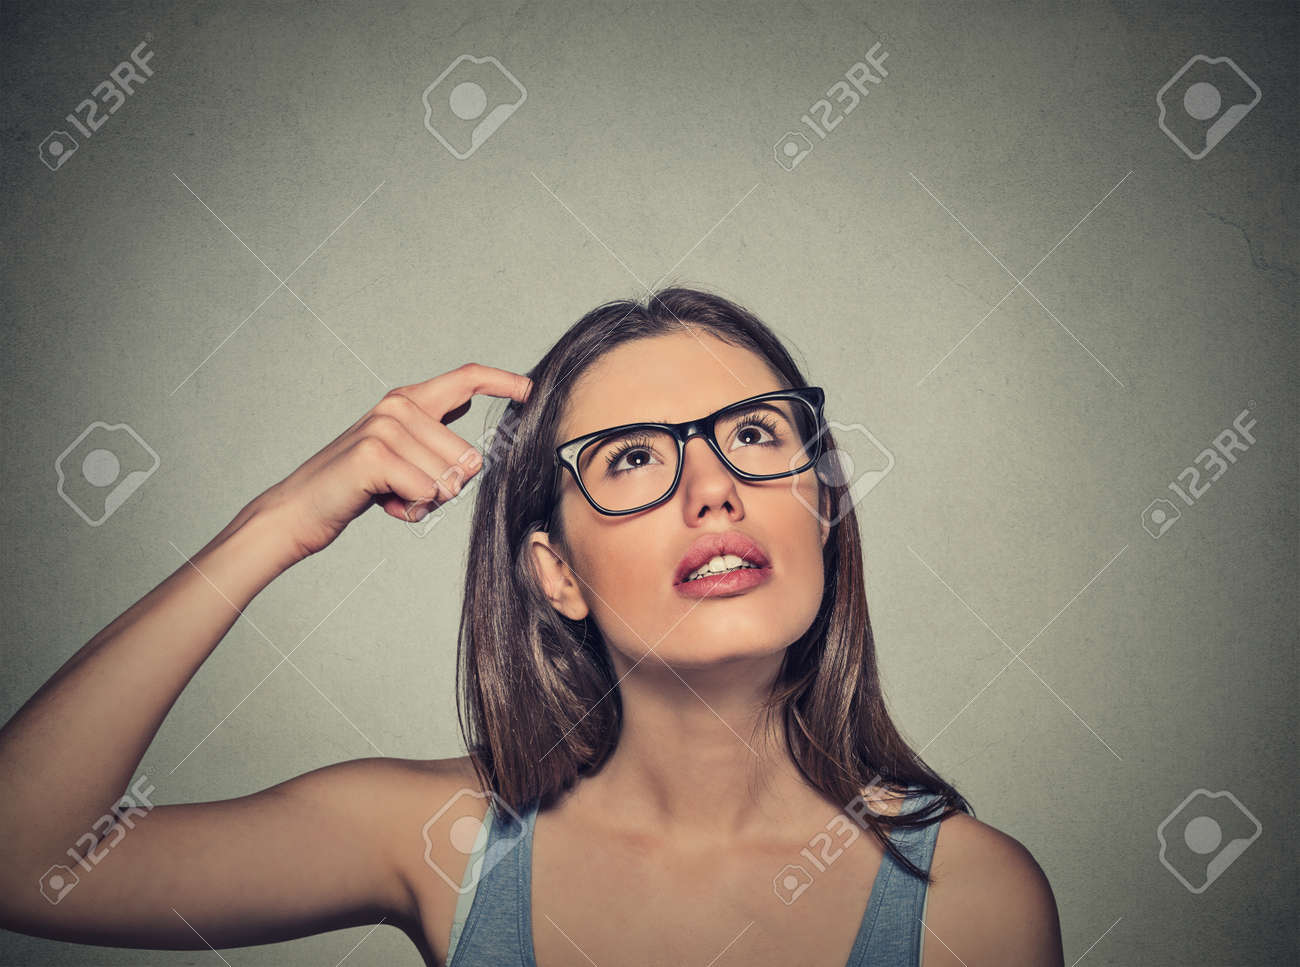 Closeup portrait young woman scratching head, thinking daydreaming deeply about something looking up isolated on gray wall background. Human facial expressions, emotions, feelings, signs, symbols - 43388417